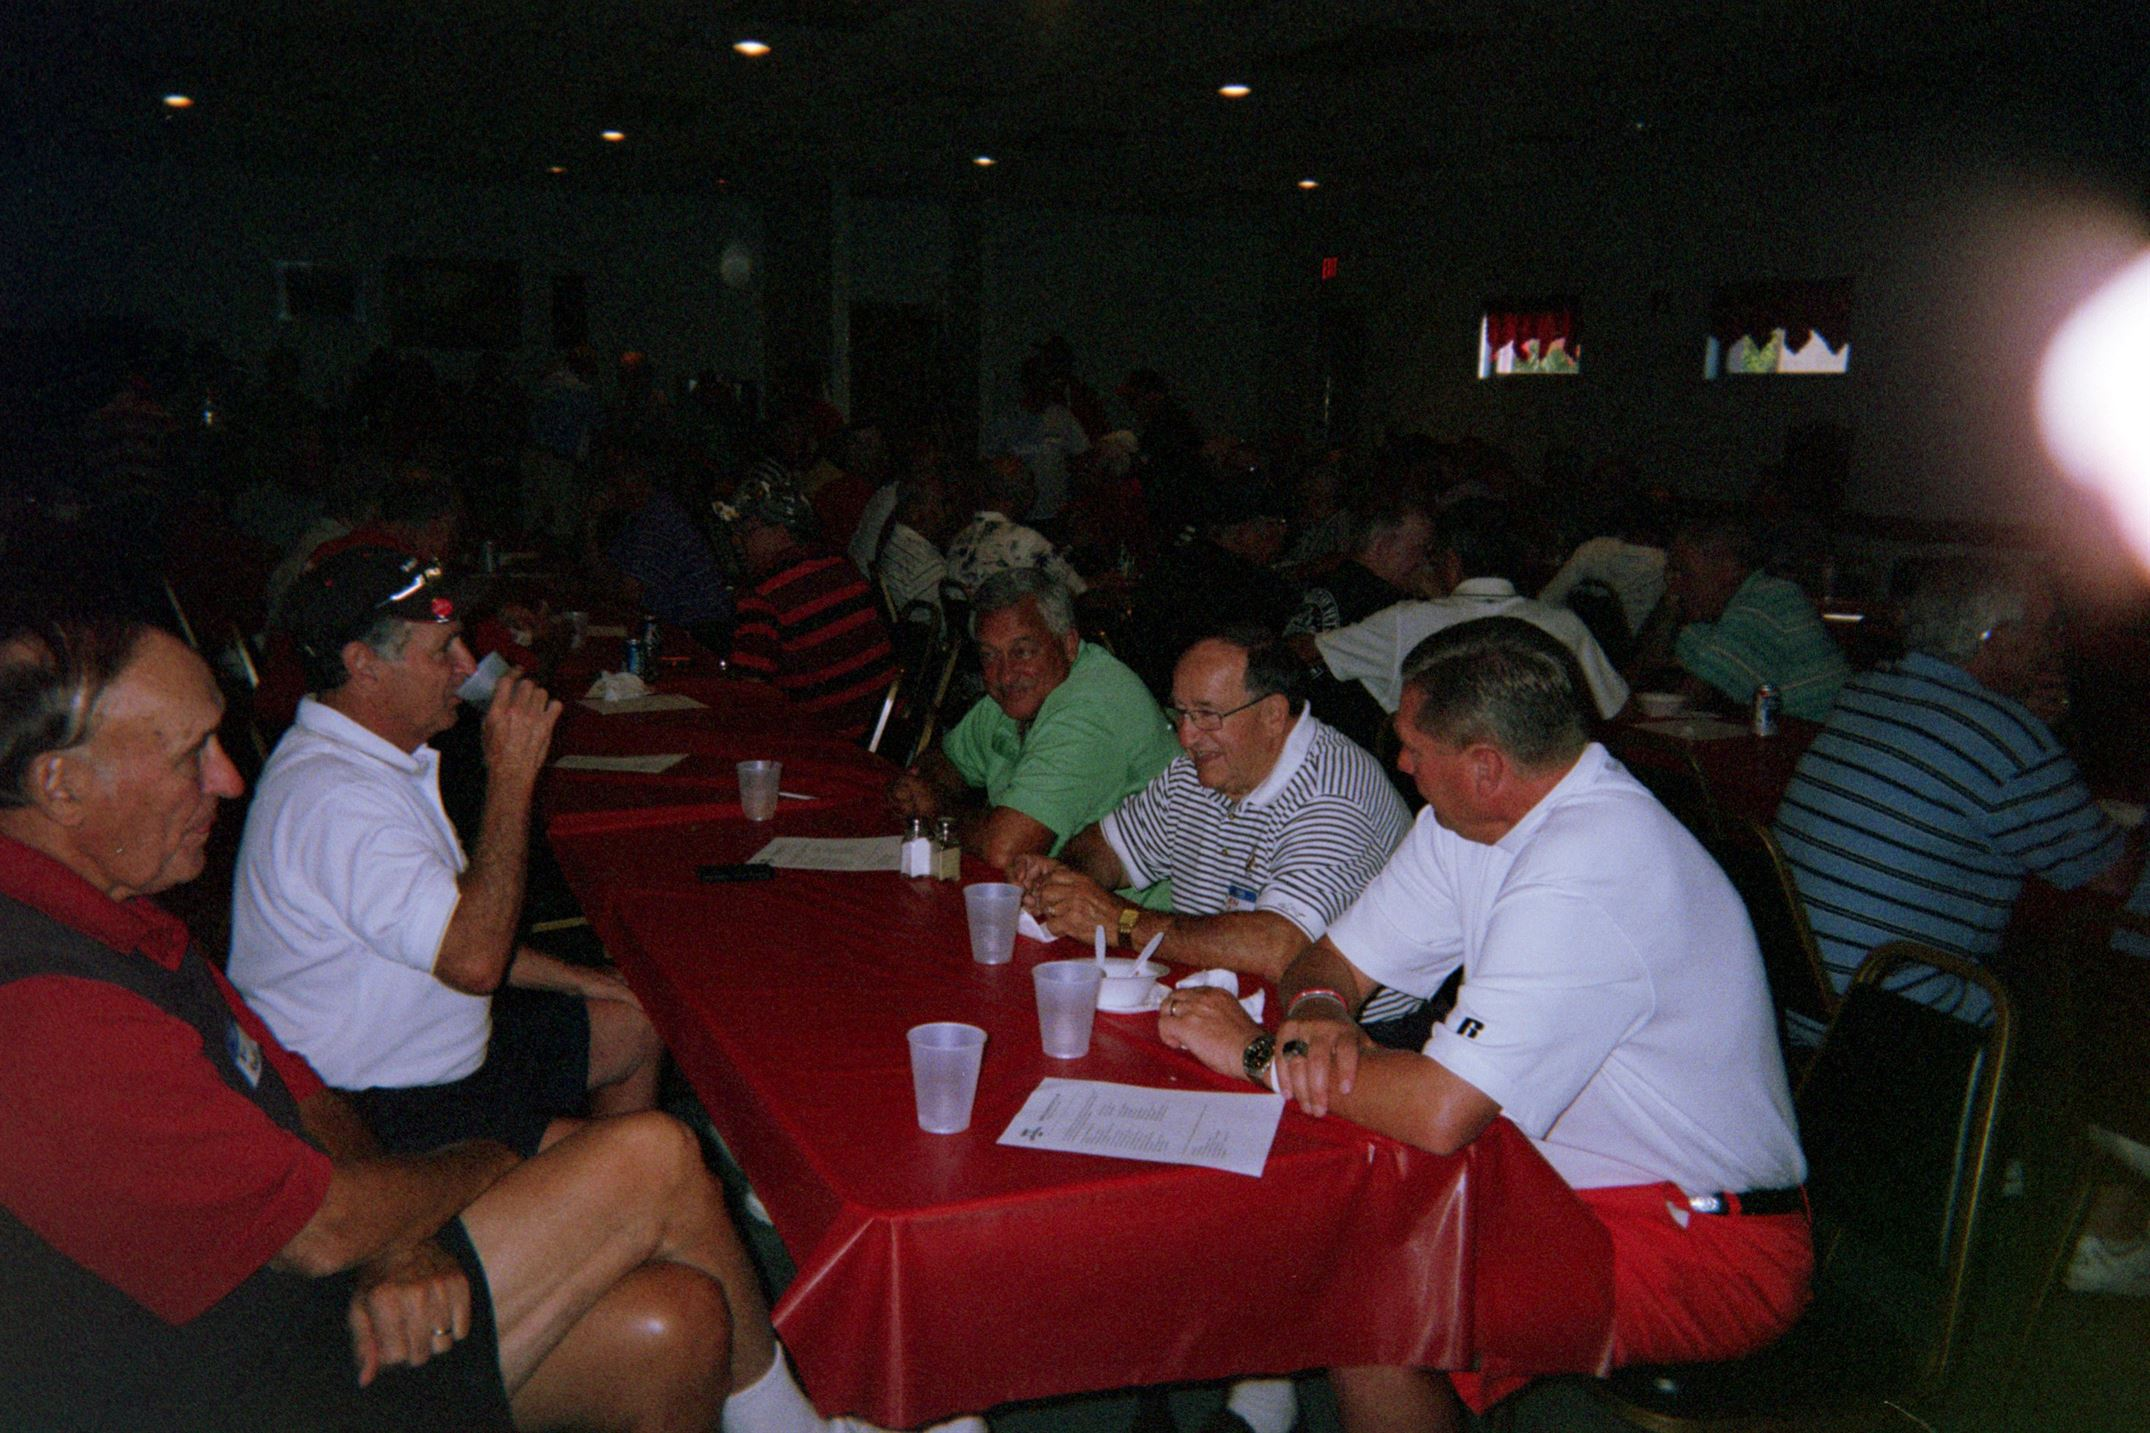 Bill Koval, Dick Pierce, Mark Pasqualone, Mike Pasqualone, Brad Ellis